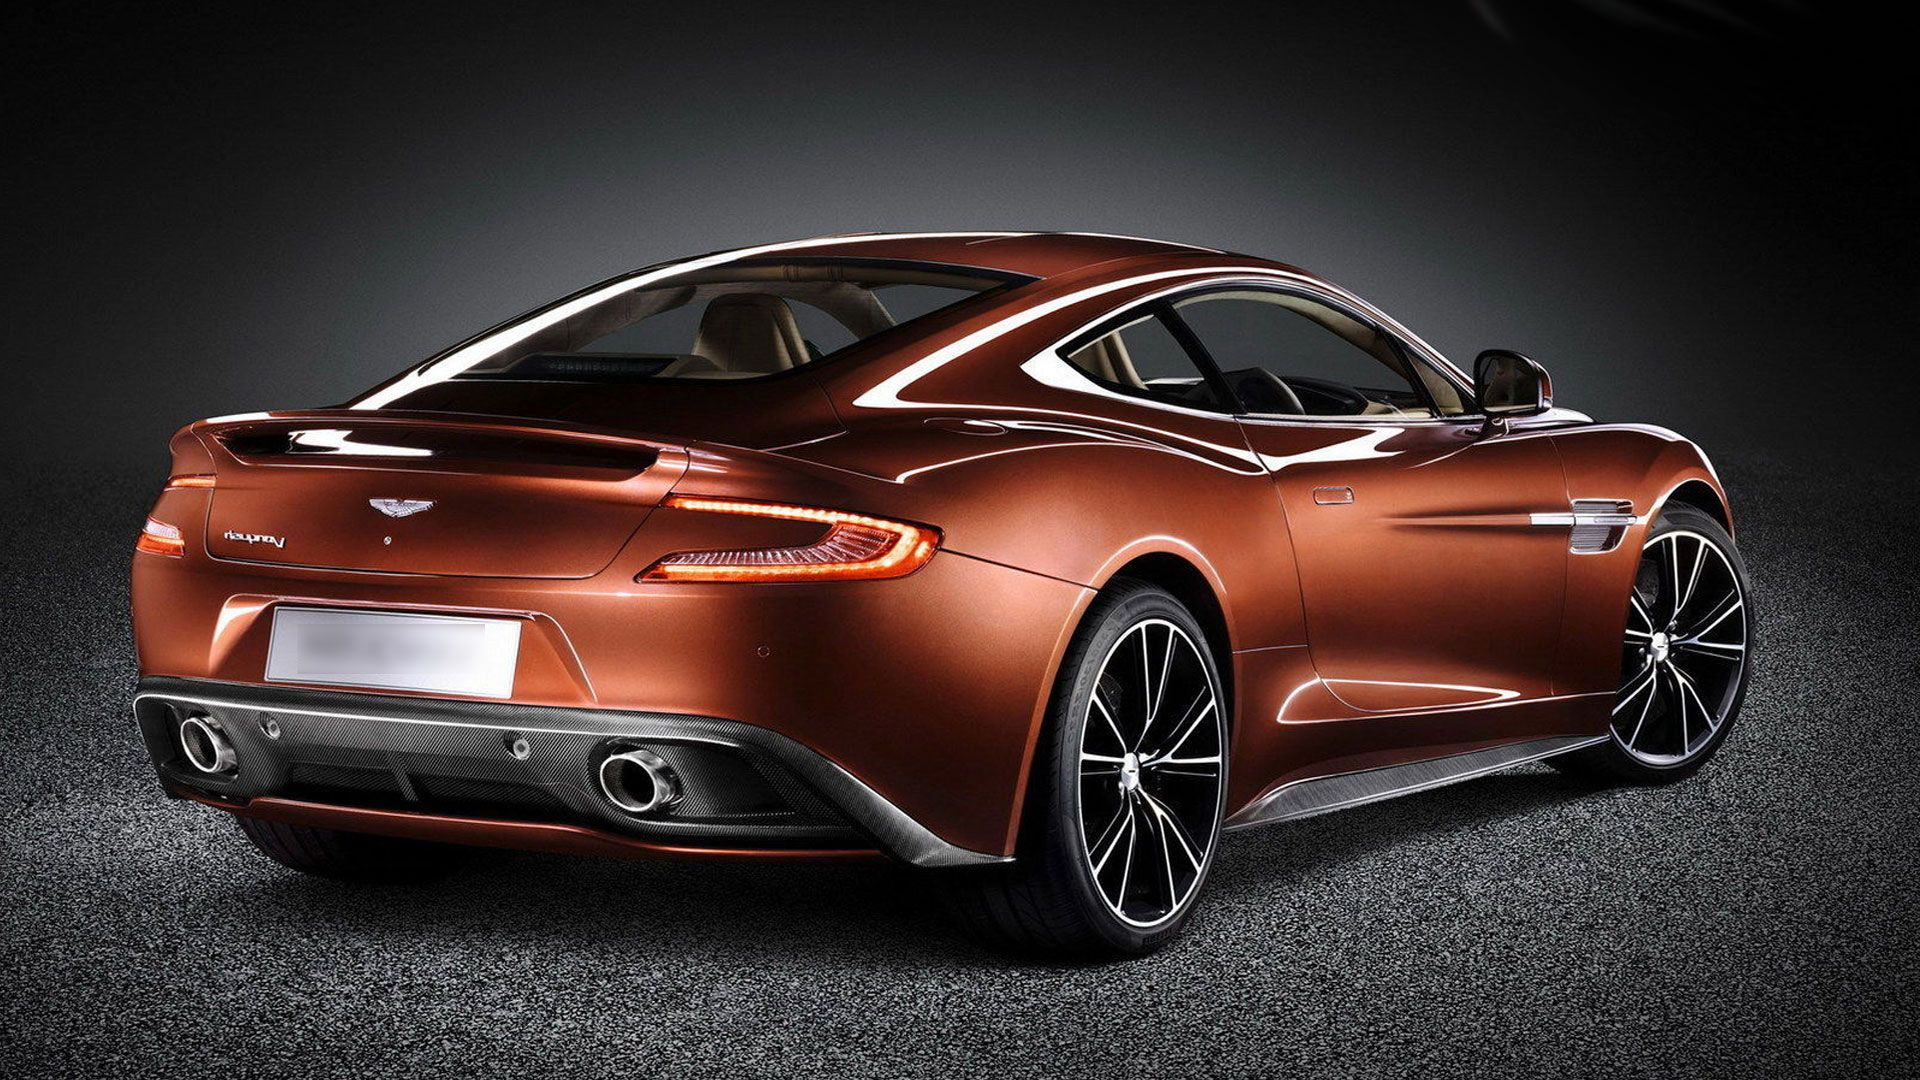 Undefined Vanquish Wallpapers 50 Wallpapers Adorable Wallpapers